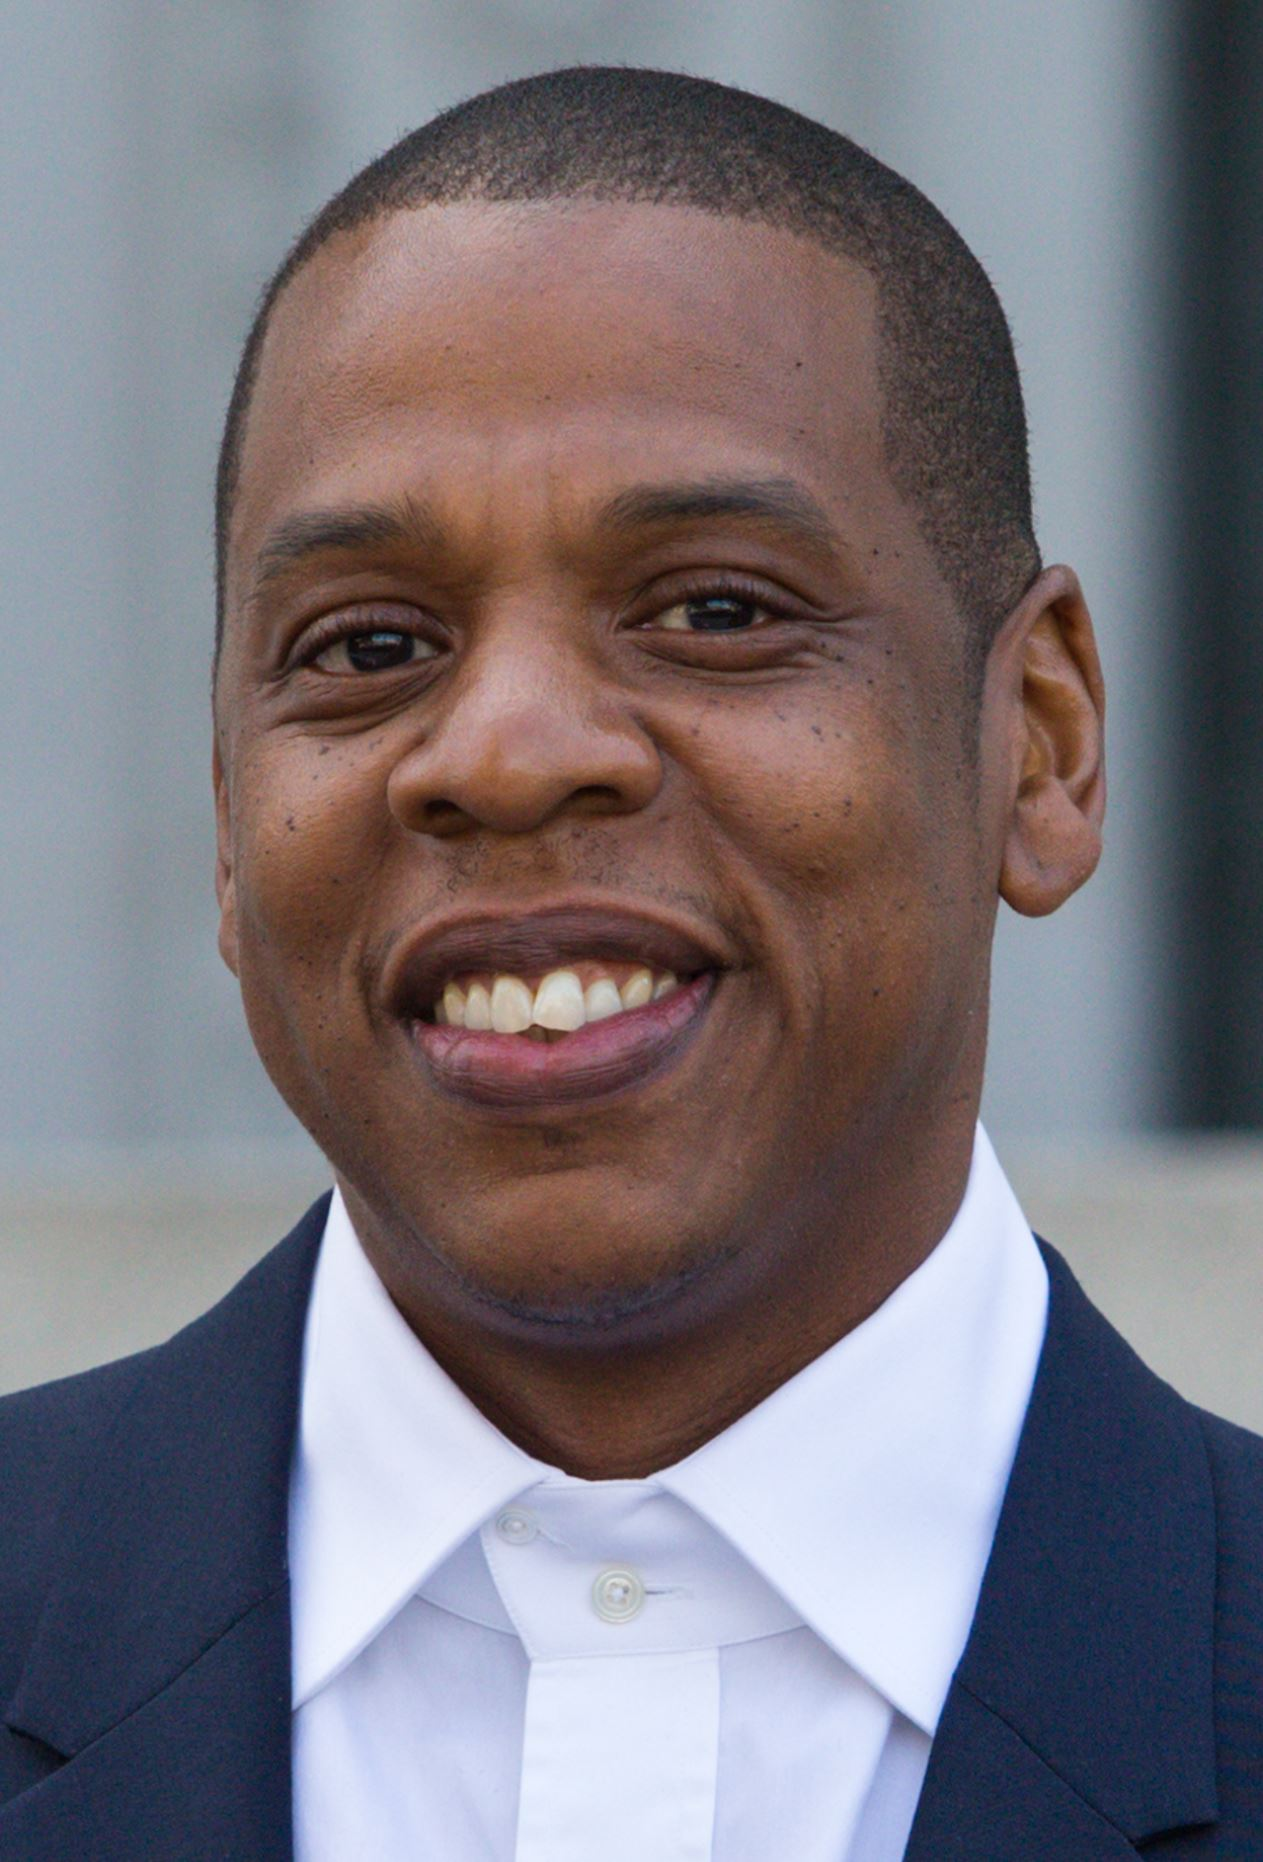 Judge dismisses copyright infringement case against Jay Z ... Jay Z